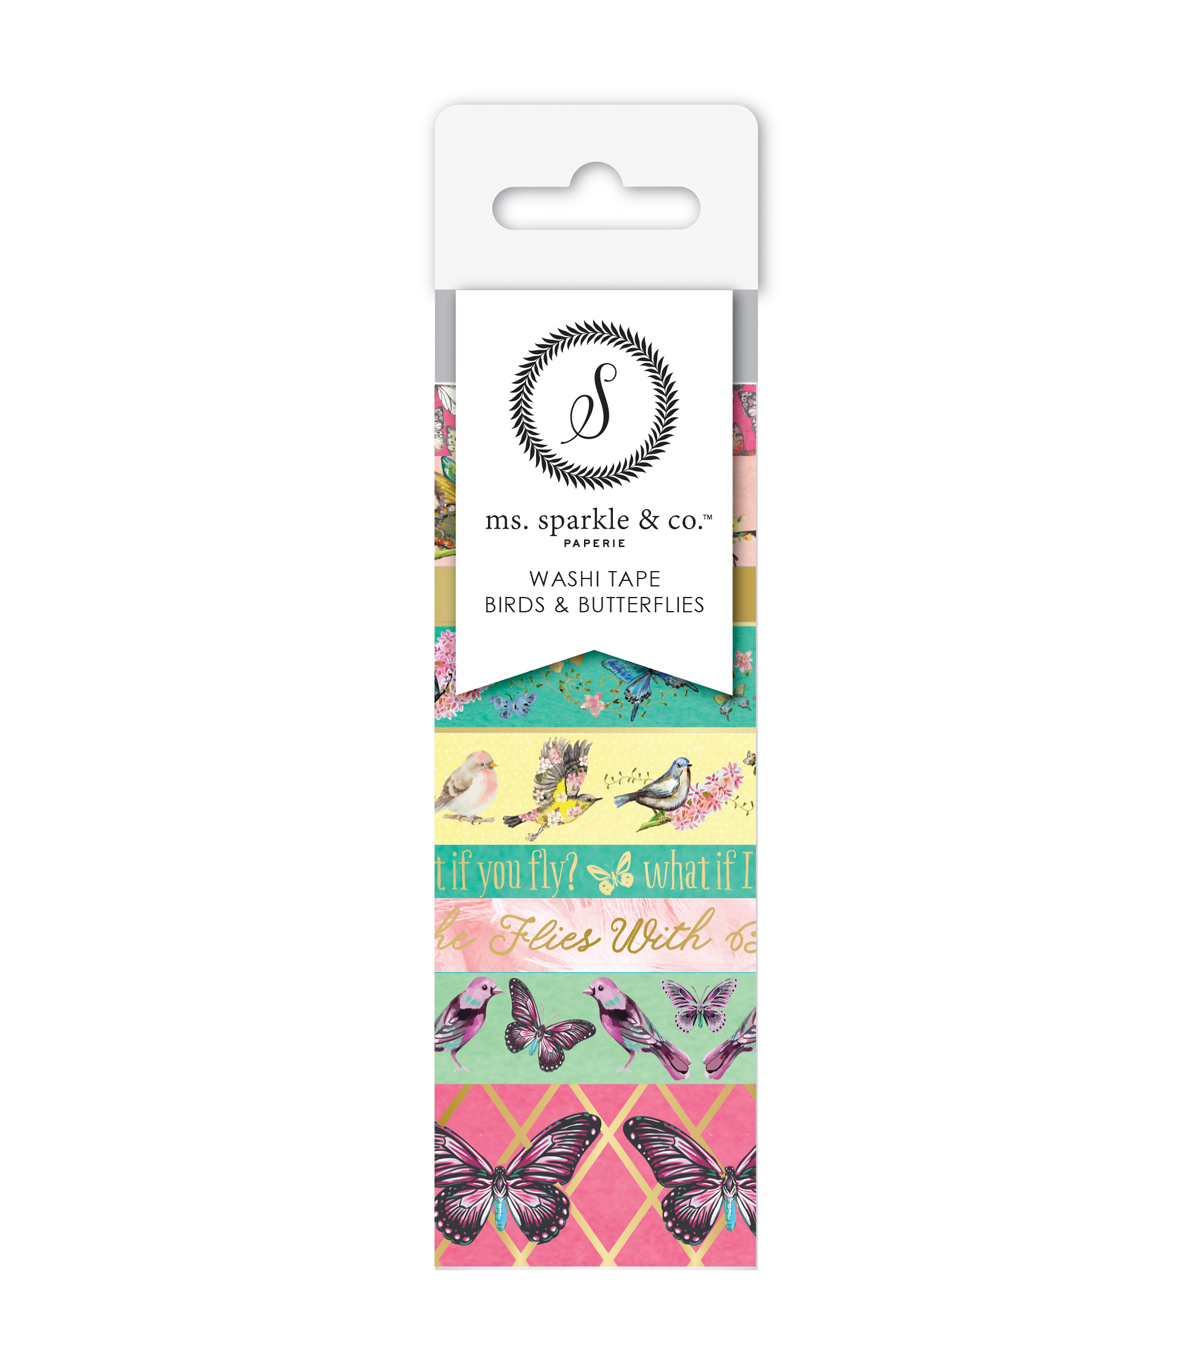 Ms. Sparkle & Co. 9 pk Washi Tapes-Birds & Butterflies